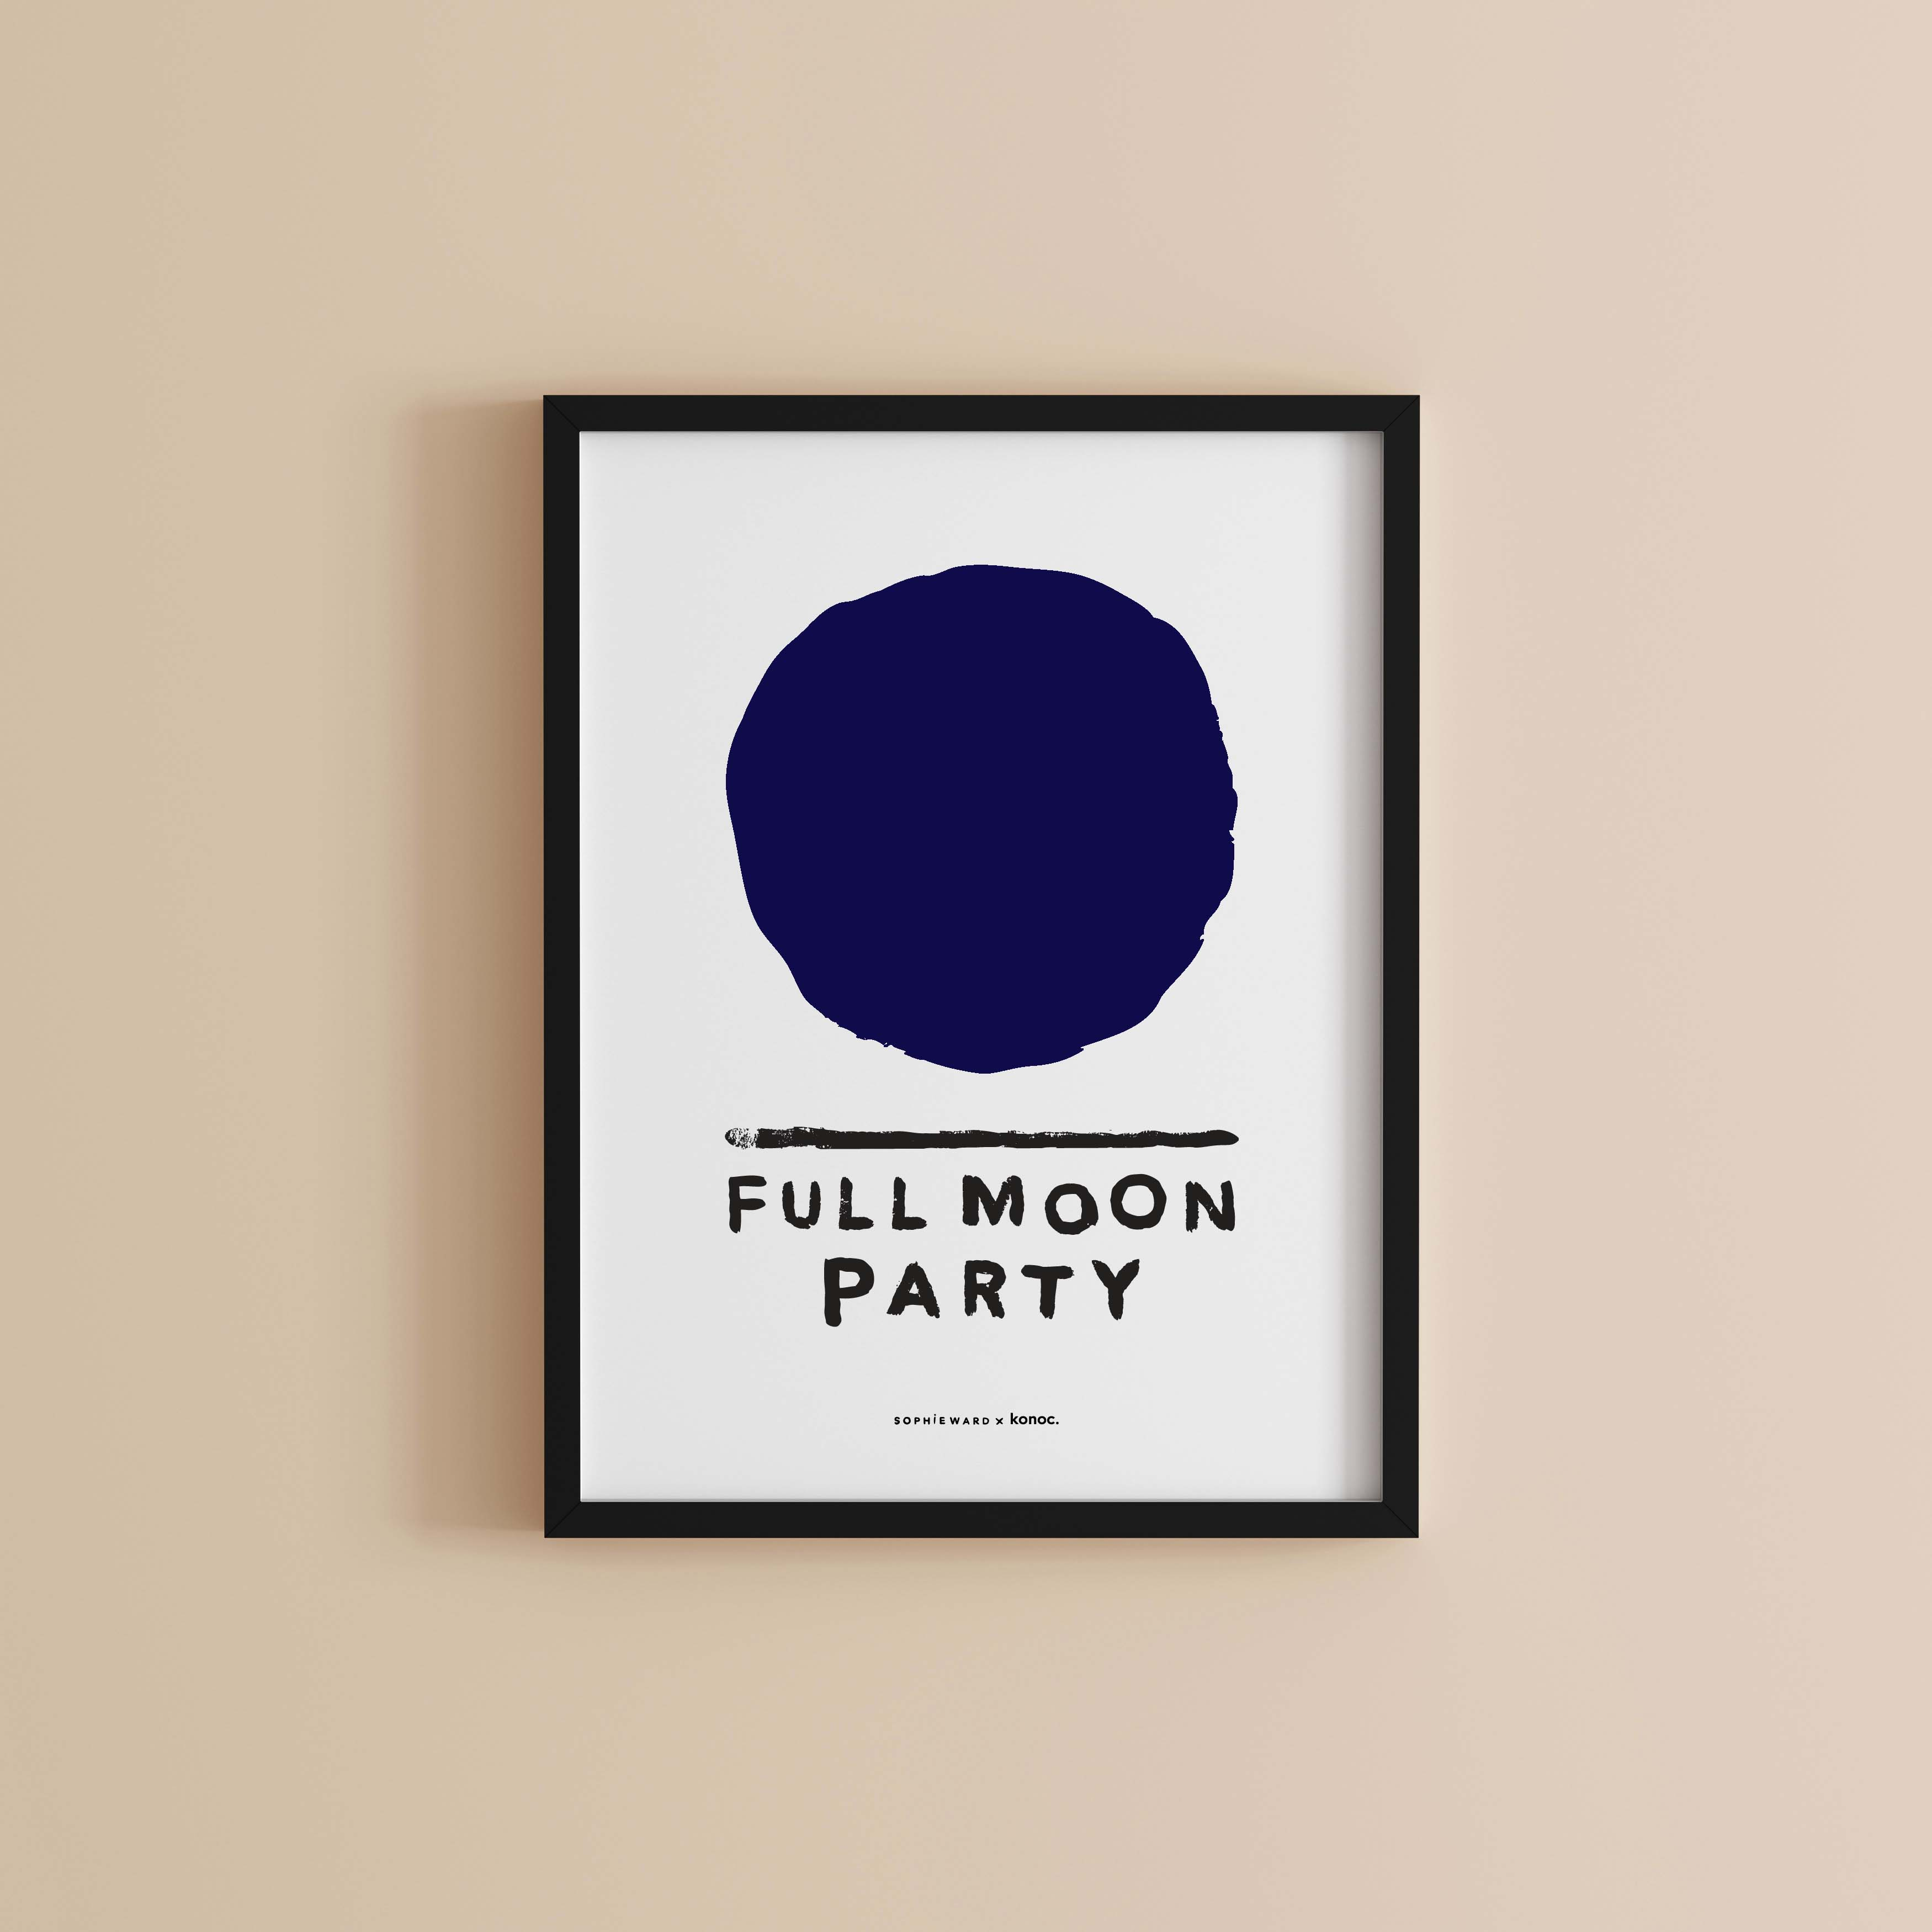 Full Moon Party Art Print KONOC and Sophie Ward Studio